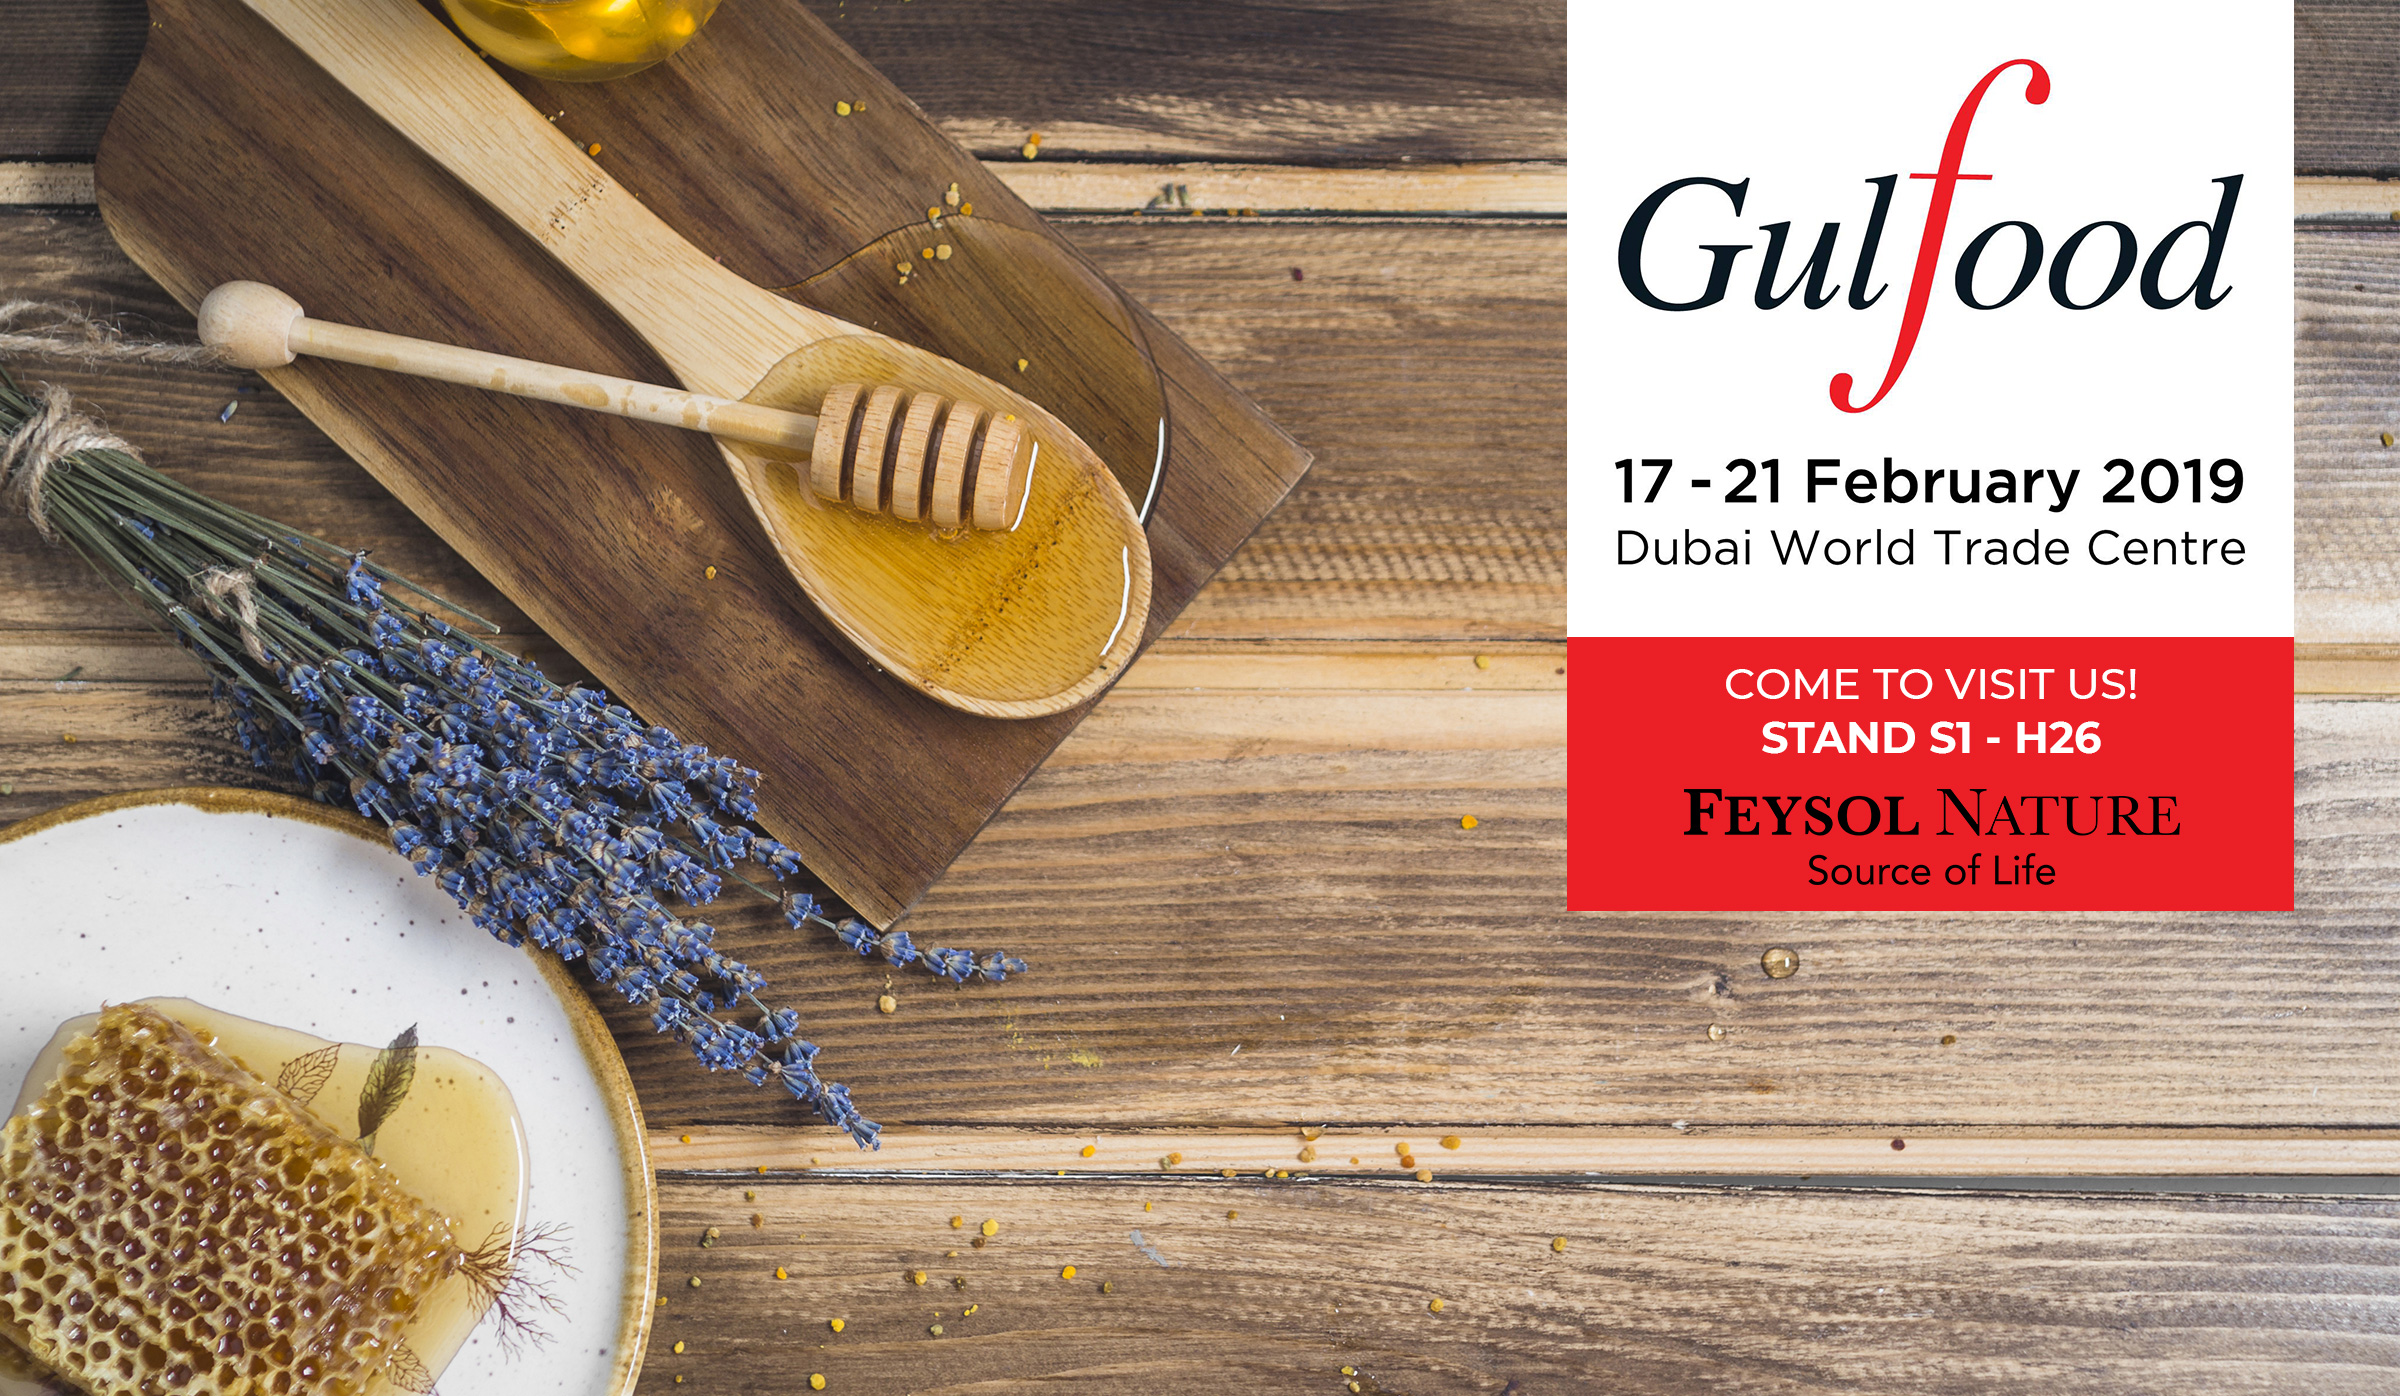 evento_gulfood-dubai_feysol-nature_web